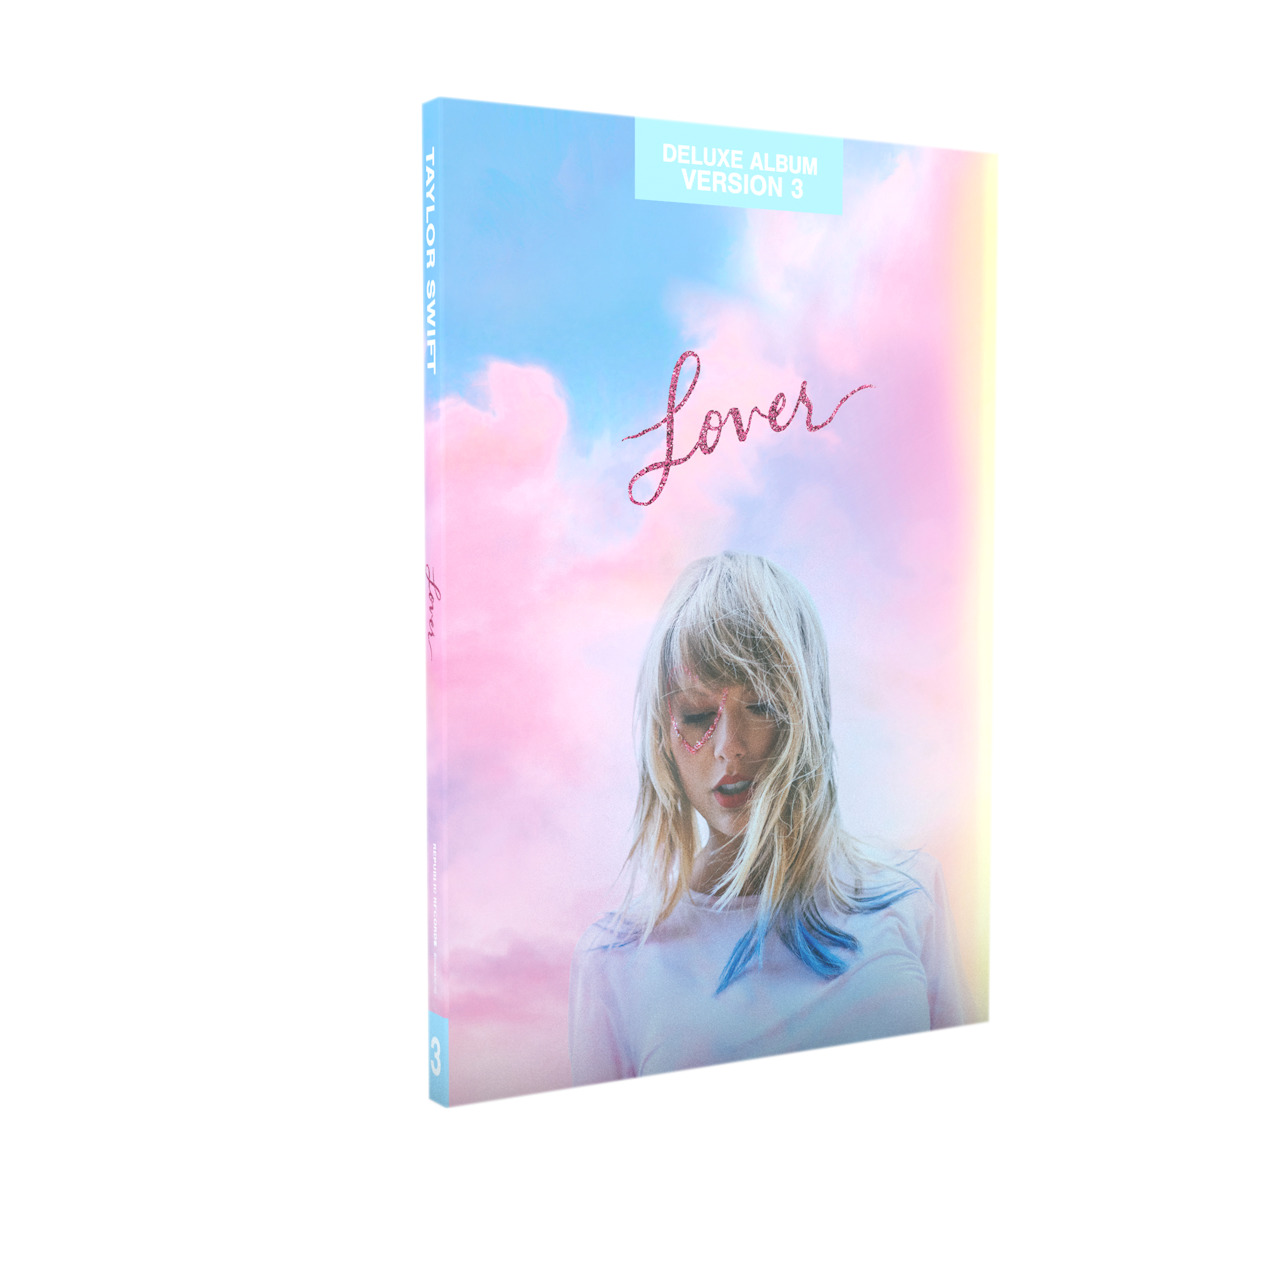 Lover - Deluxe Journal Version 3 by Taylor Swift image